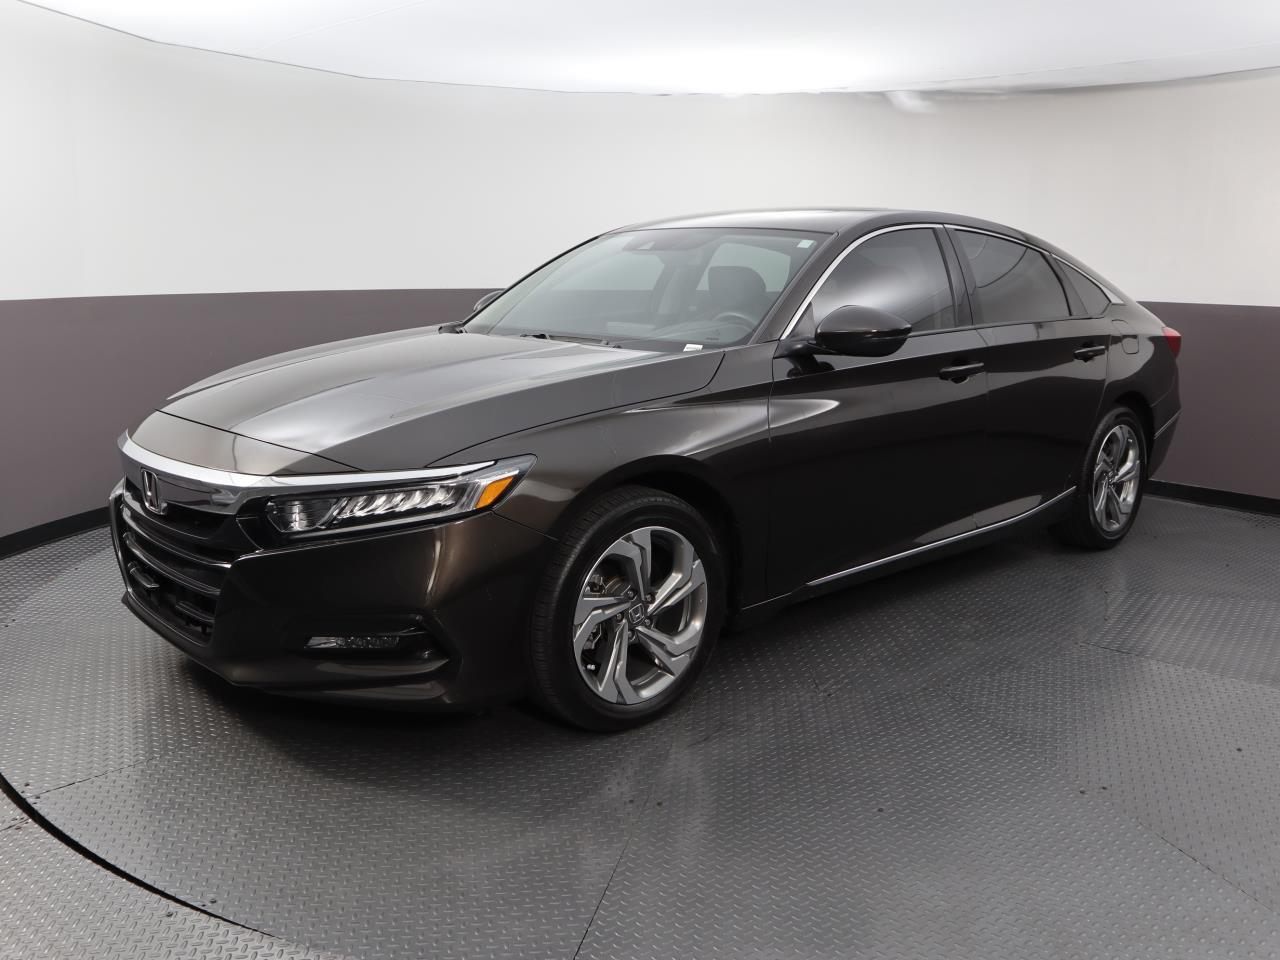 Used HONDA ACCORD 2018 WEST PALM EX-L NAVI 2.0T